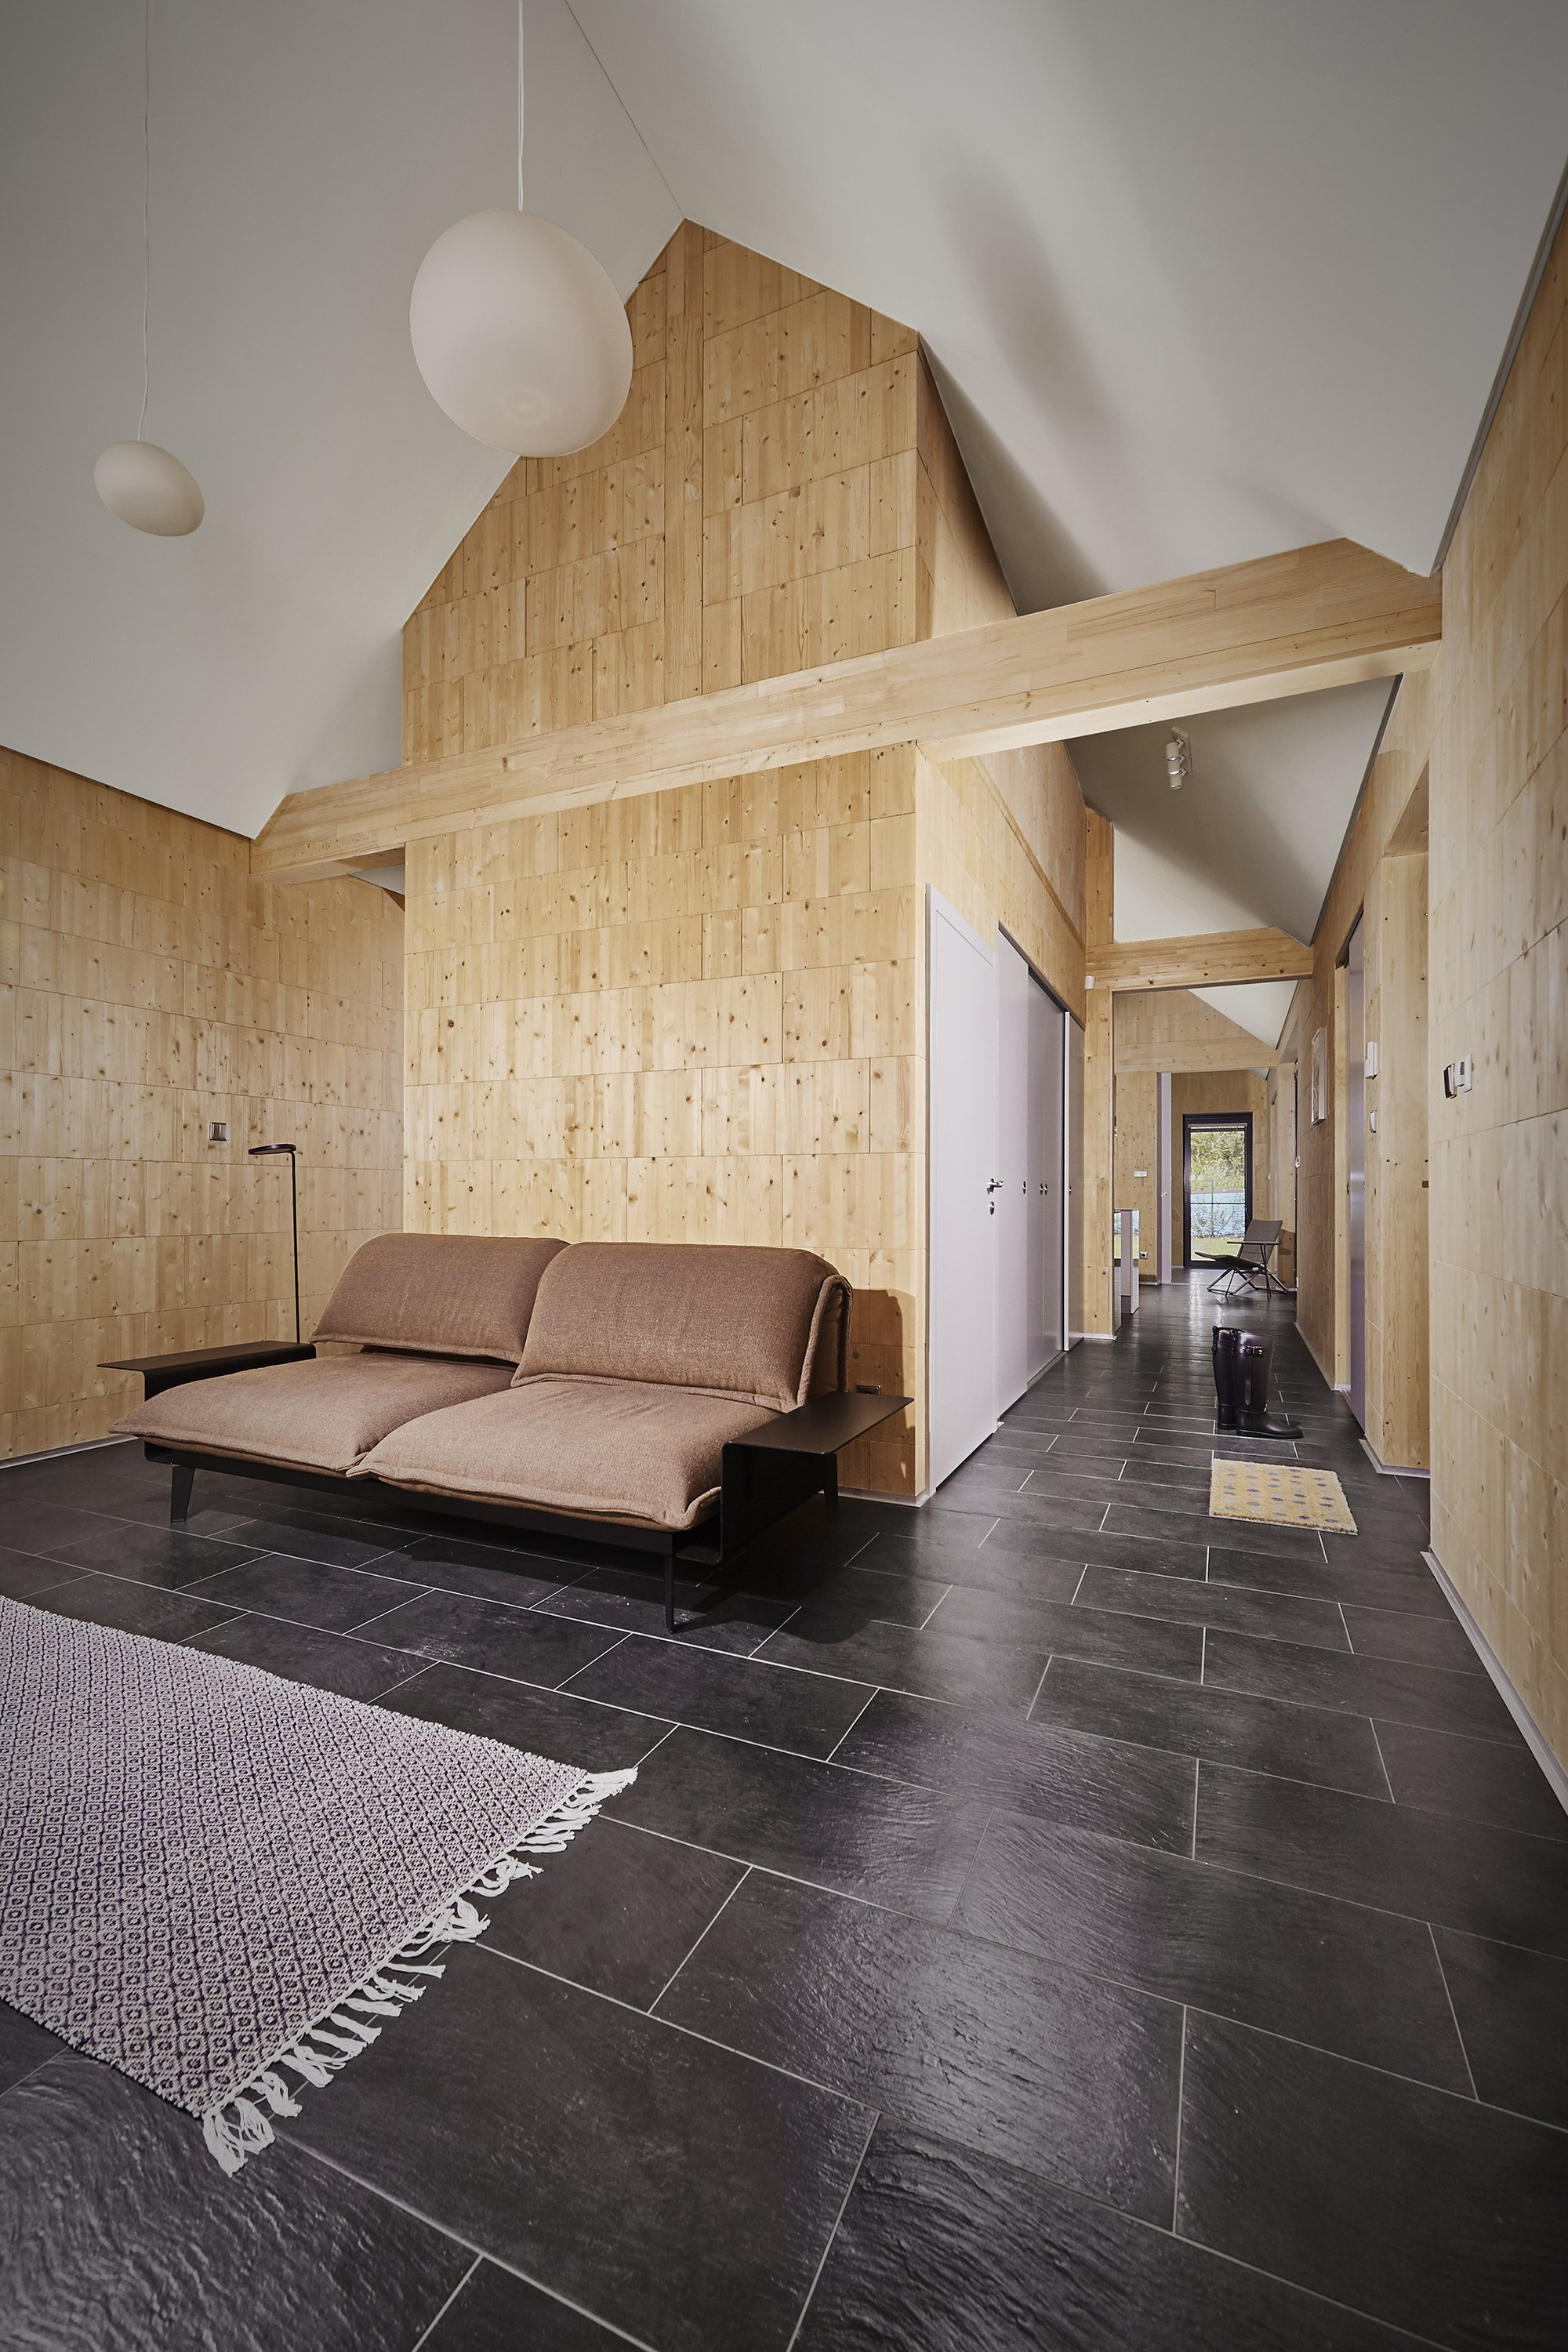 The Wooden Brick House is Made of Eco-Friendly Wooden Bricks